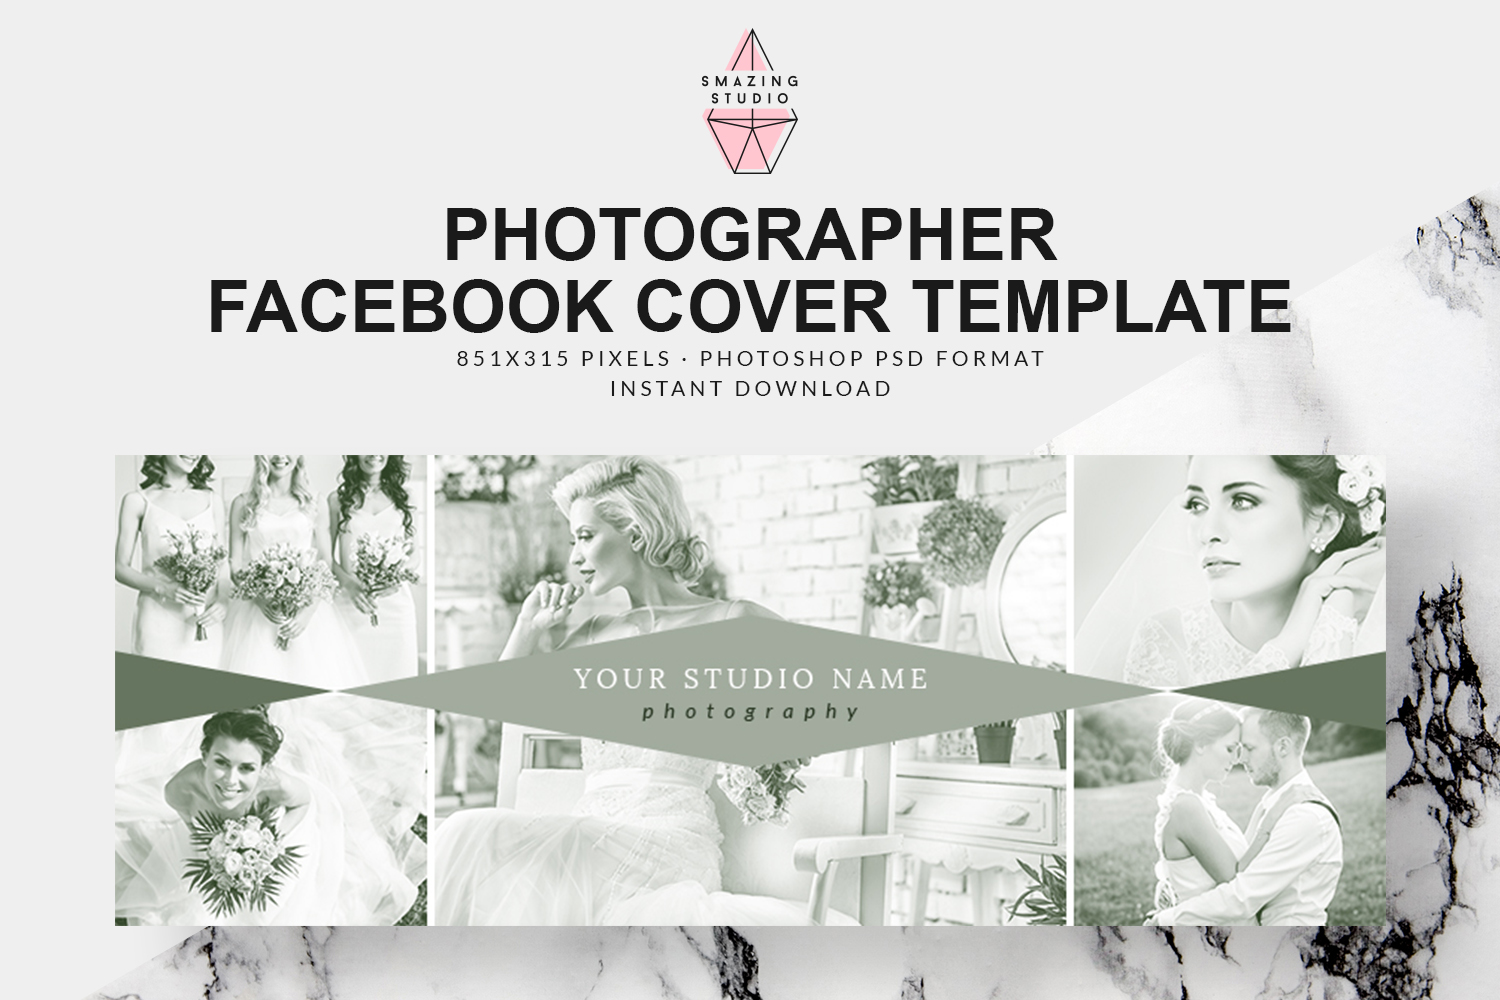 Photographer Facebook Cover Template - FBC012 example image 1